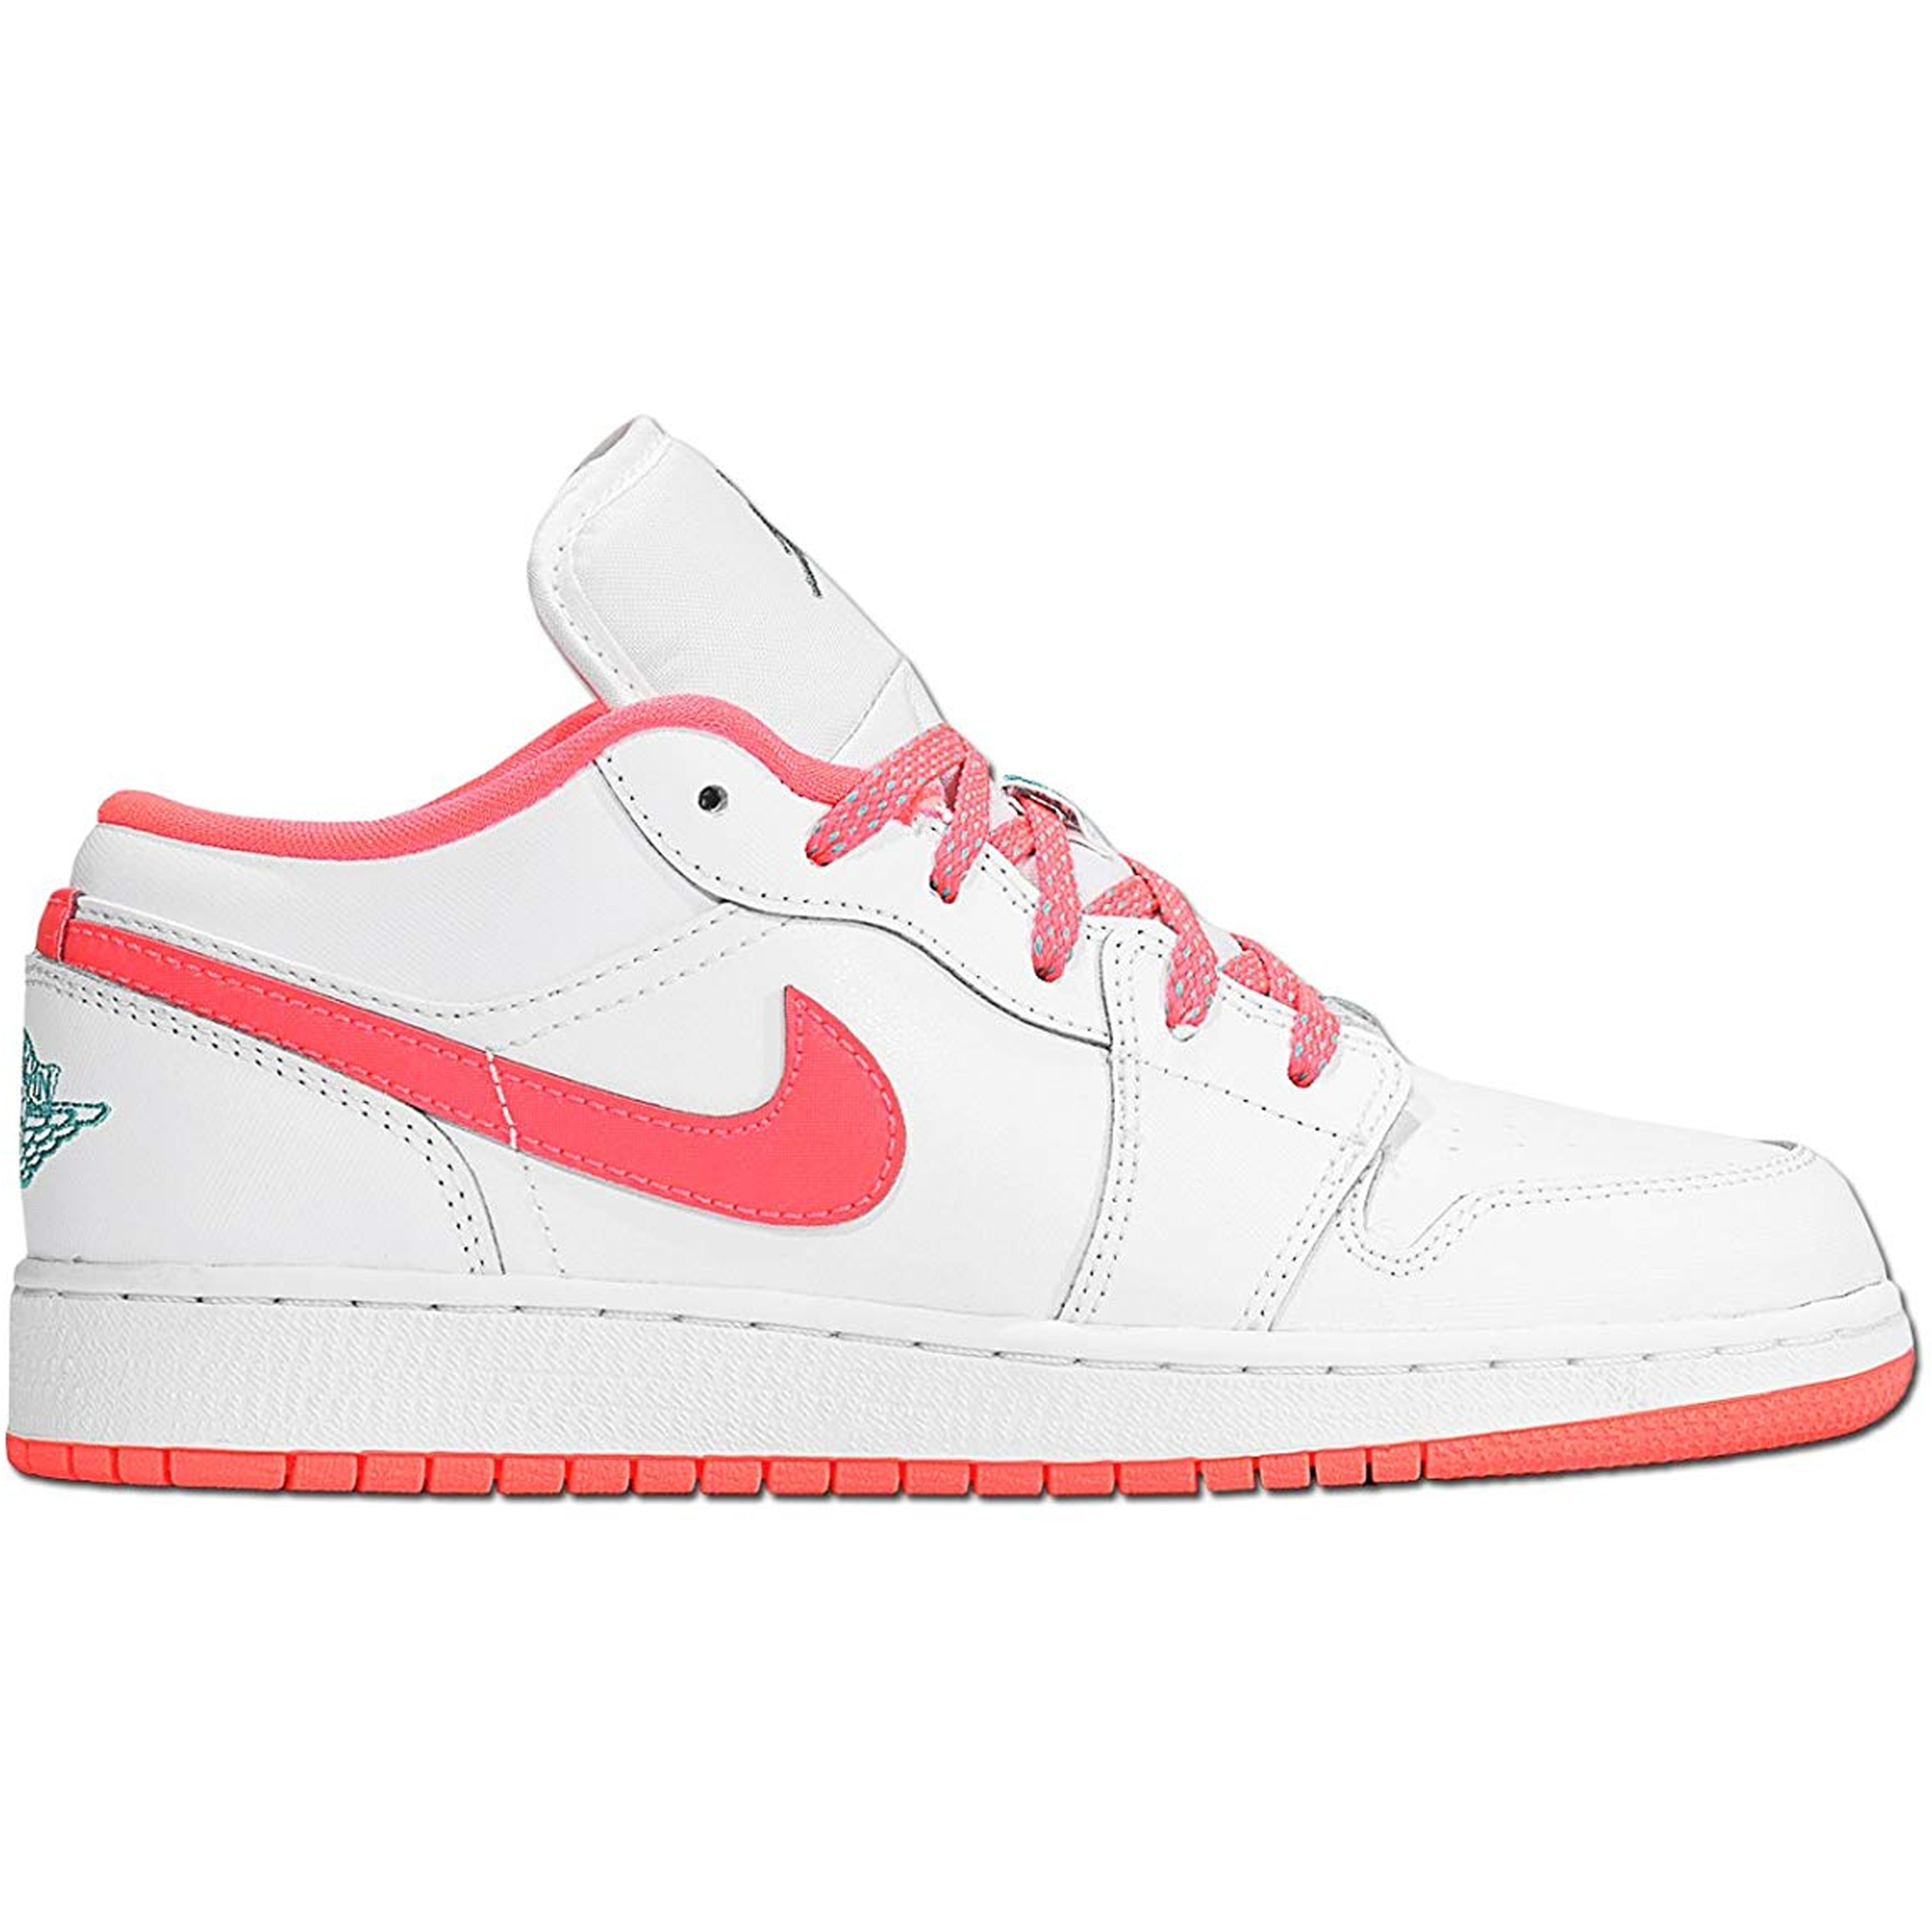 Jordan 1 Low White Hot Lava (GS) (554723-128)